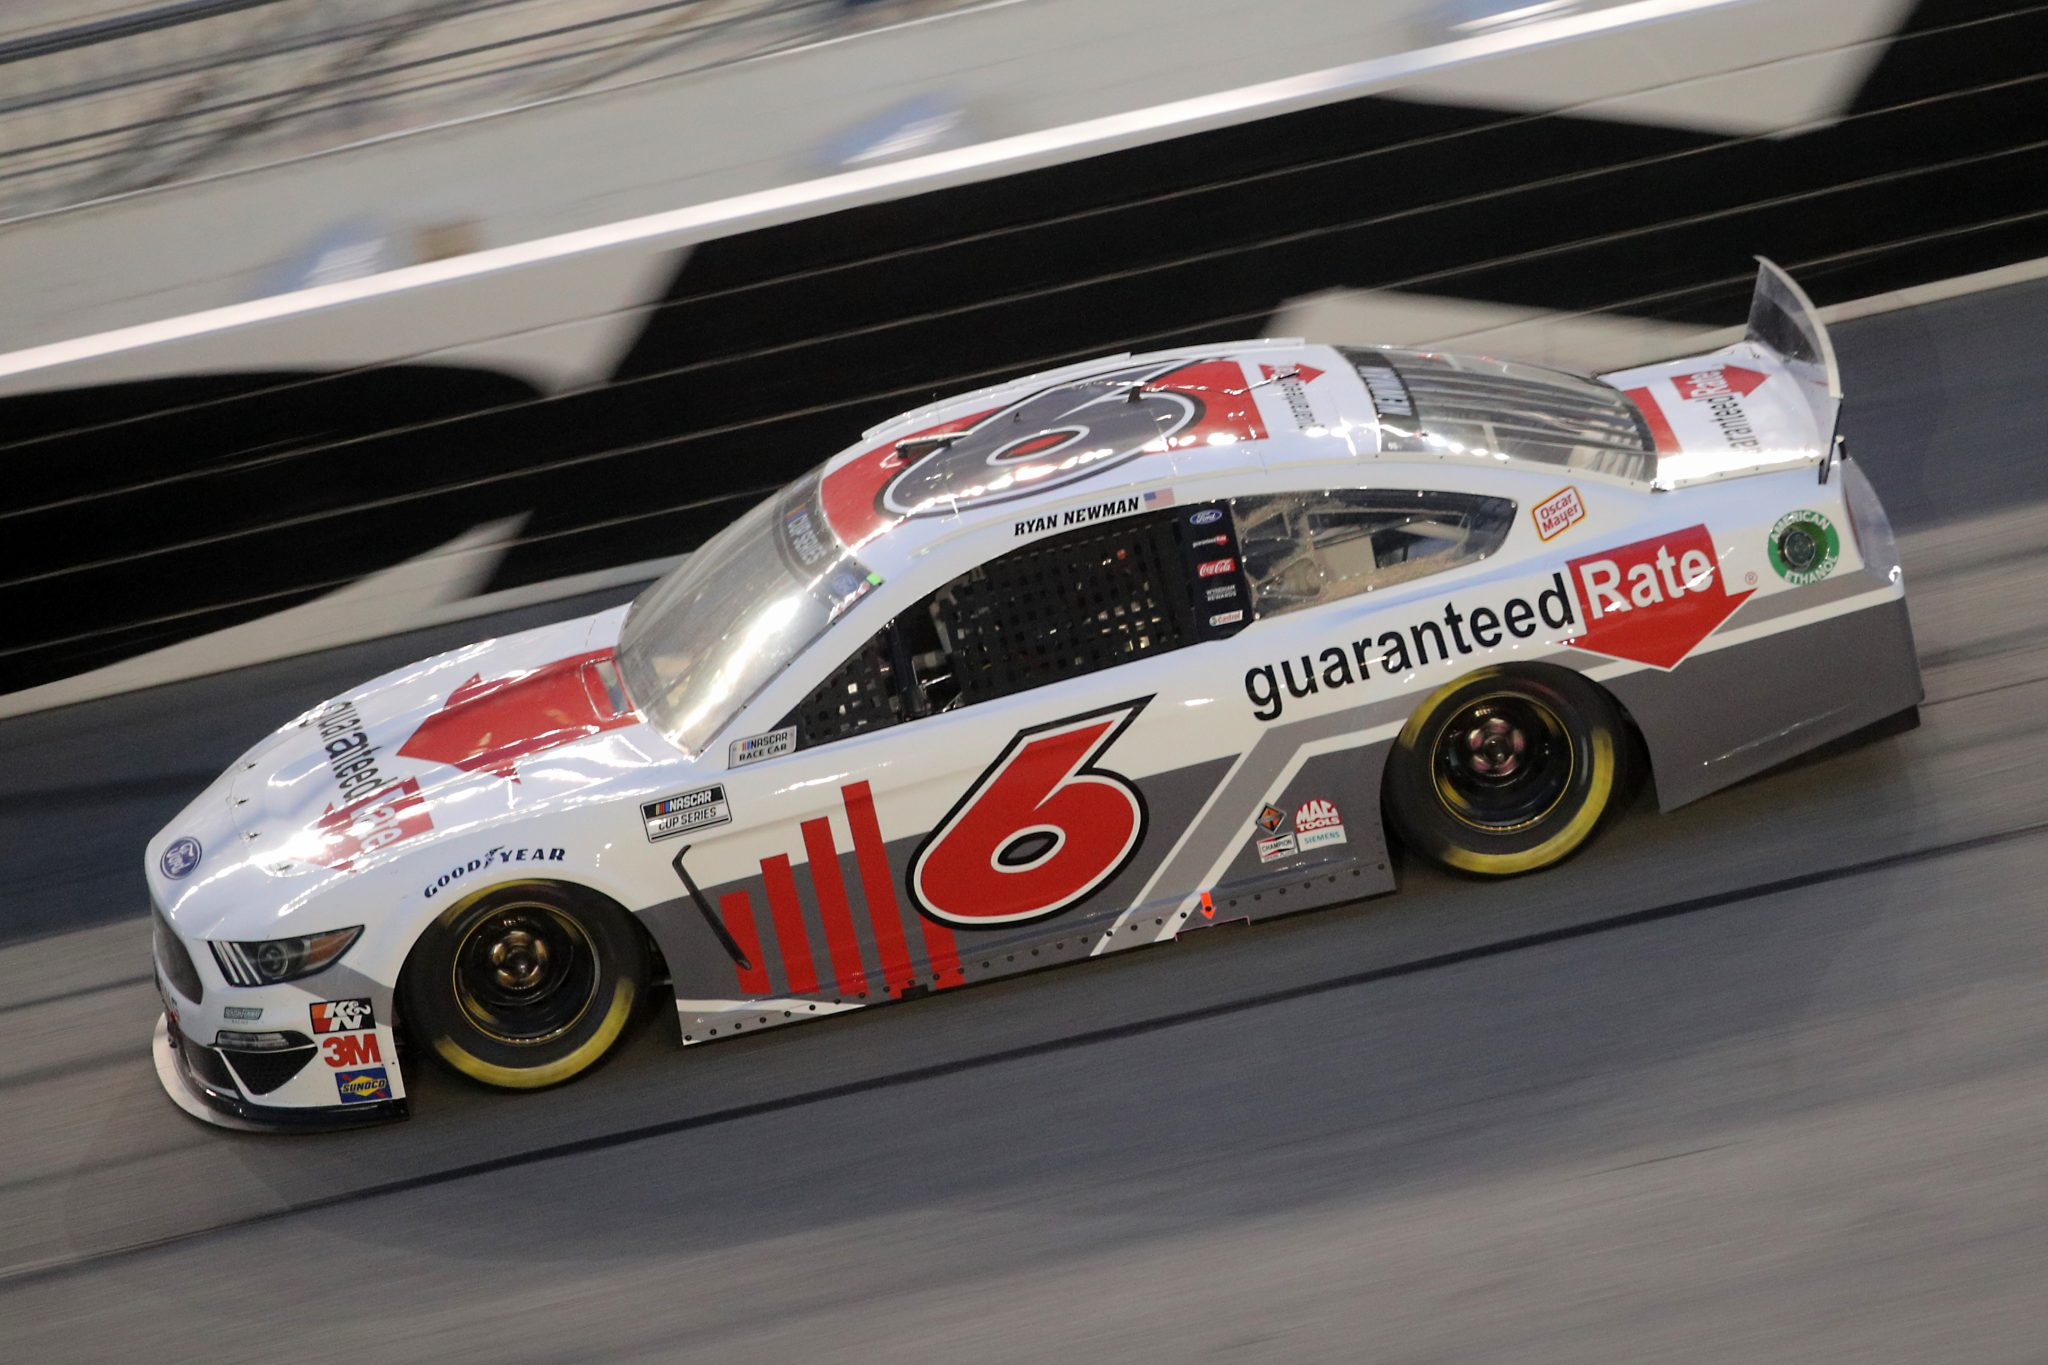 DAYTONA BEACH, FLORIDA - AUGUST 29: Ryan Newman, driver of the #6 Guaranteed Rate Ford, drives during the NASCAR Cup Series Coke Zero Sugar 400 at Daytona International Speedway on August 29, 2020 in Daytona Beach, Florida. (Photo by Chris Graythen/Getty Images) | Getty Images